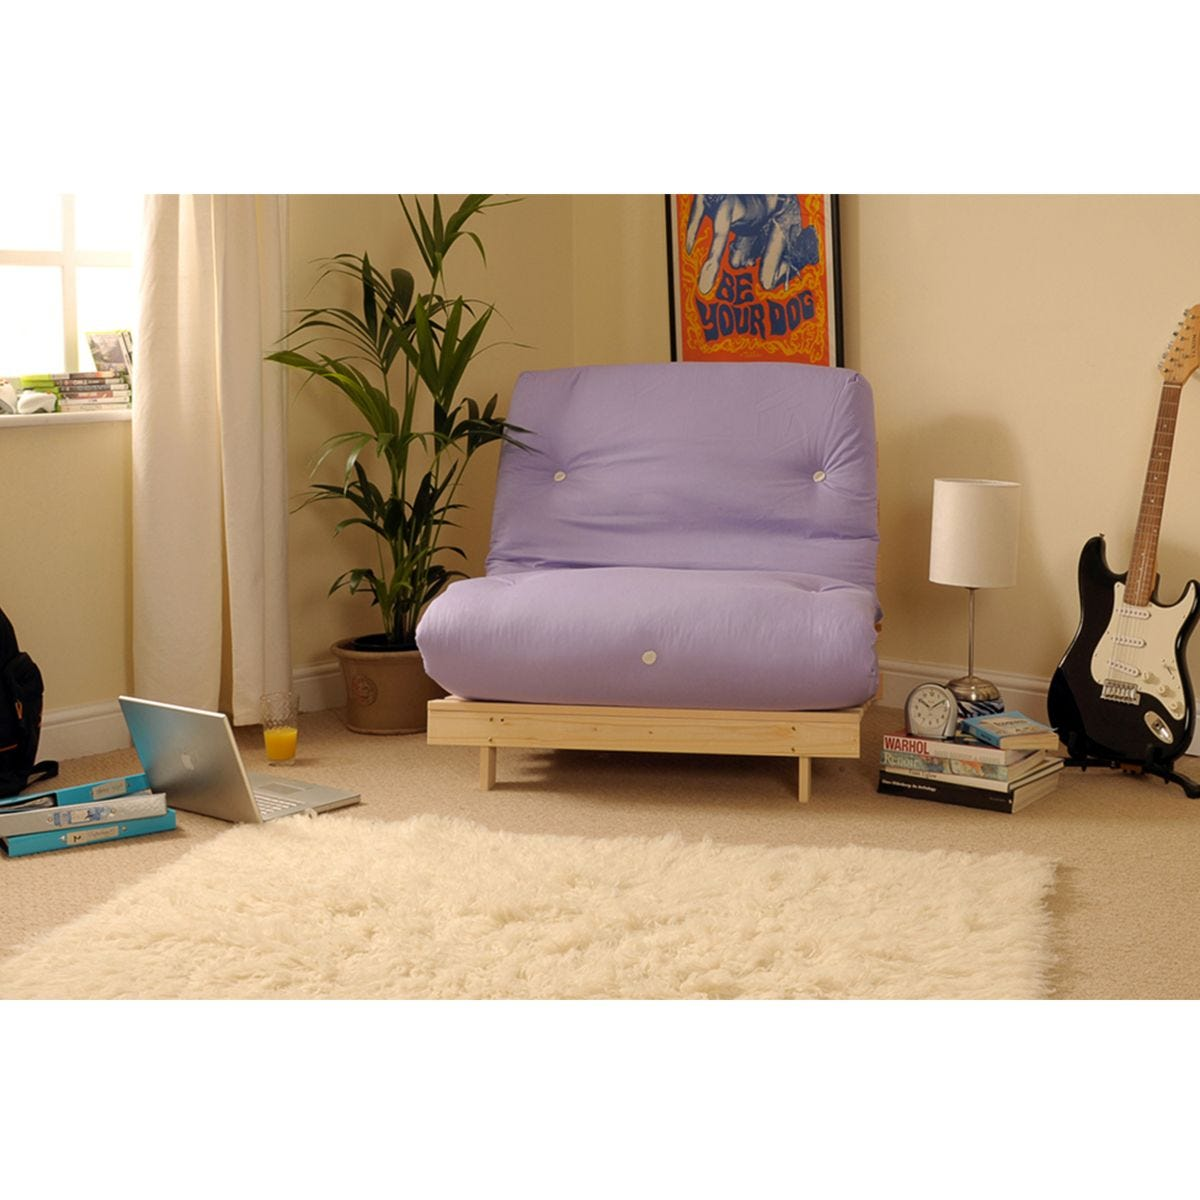 Albury Small Double Sofa Bed Set With Tufted Mattress - Lilac